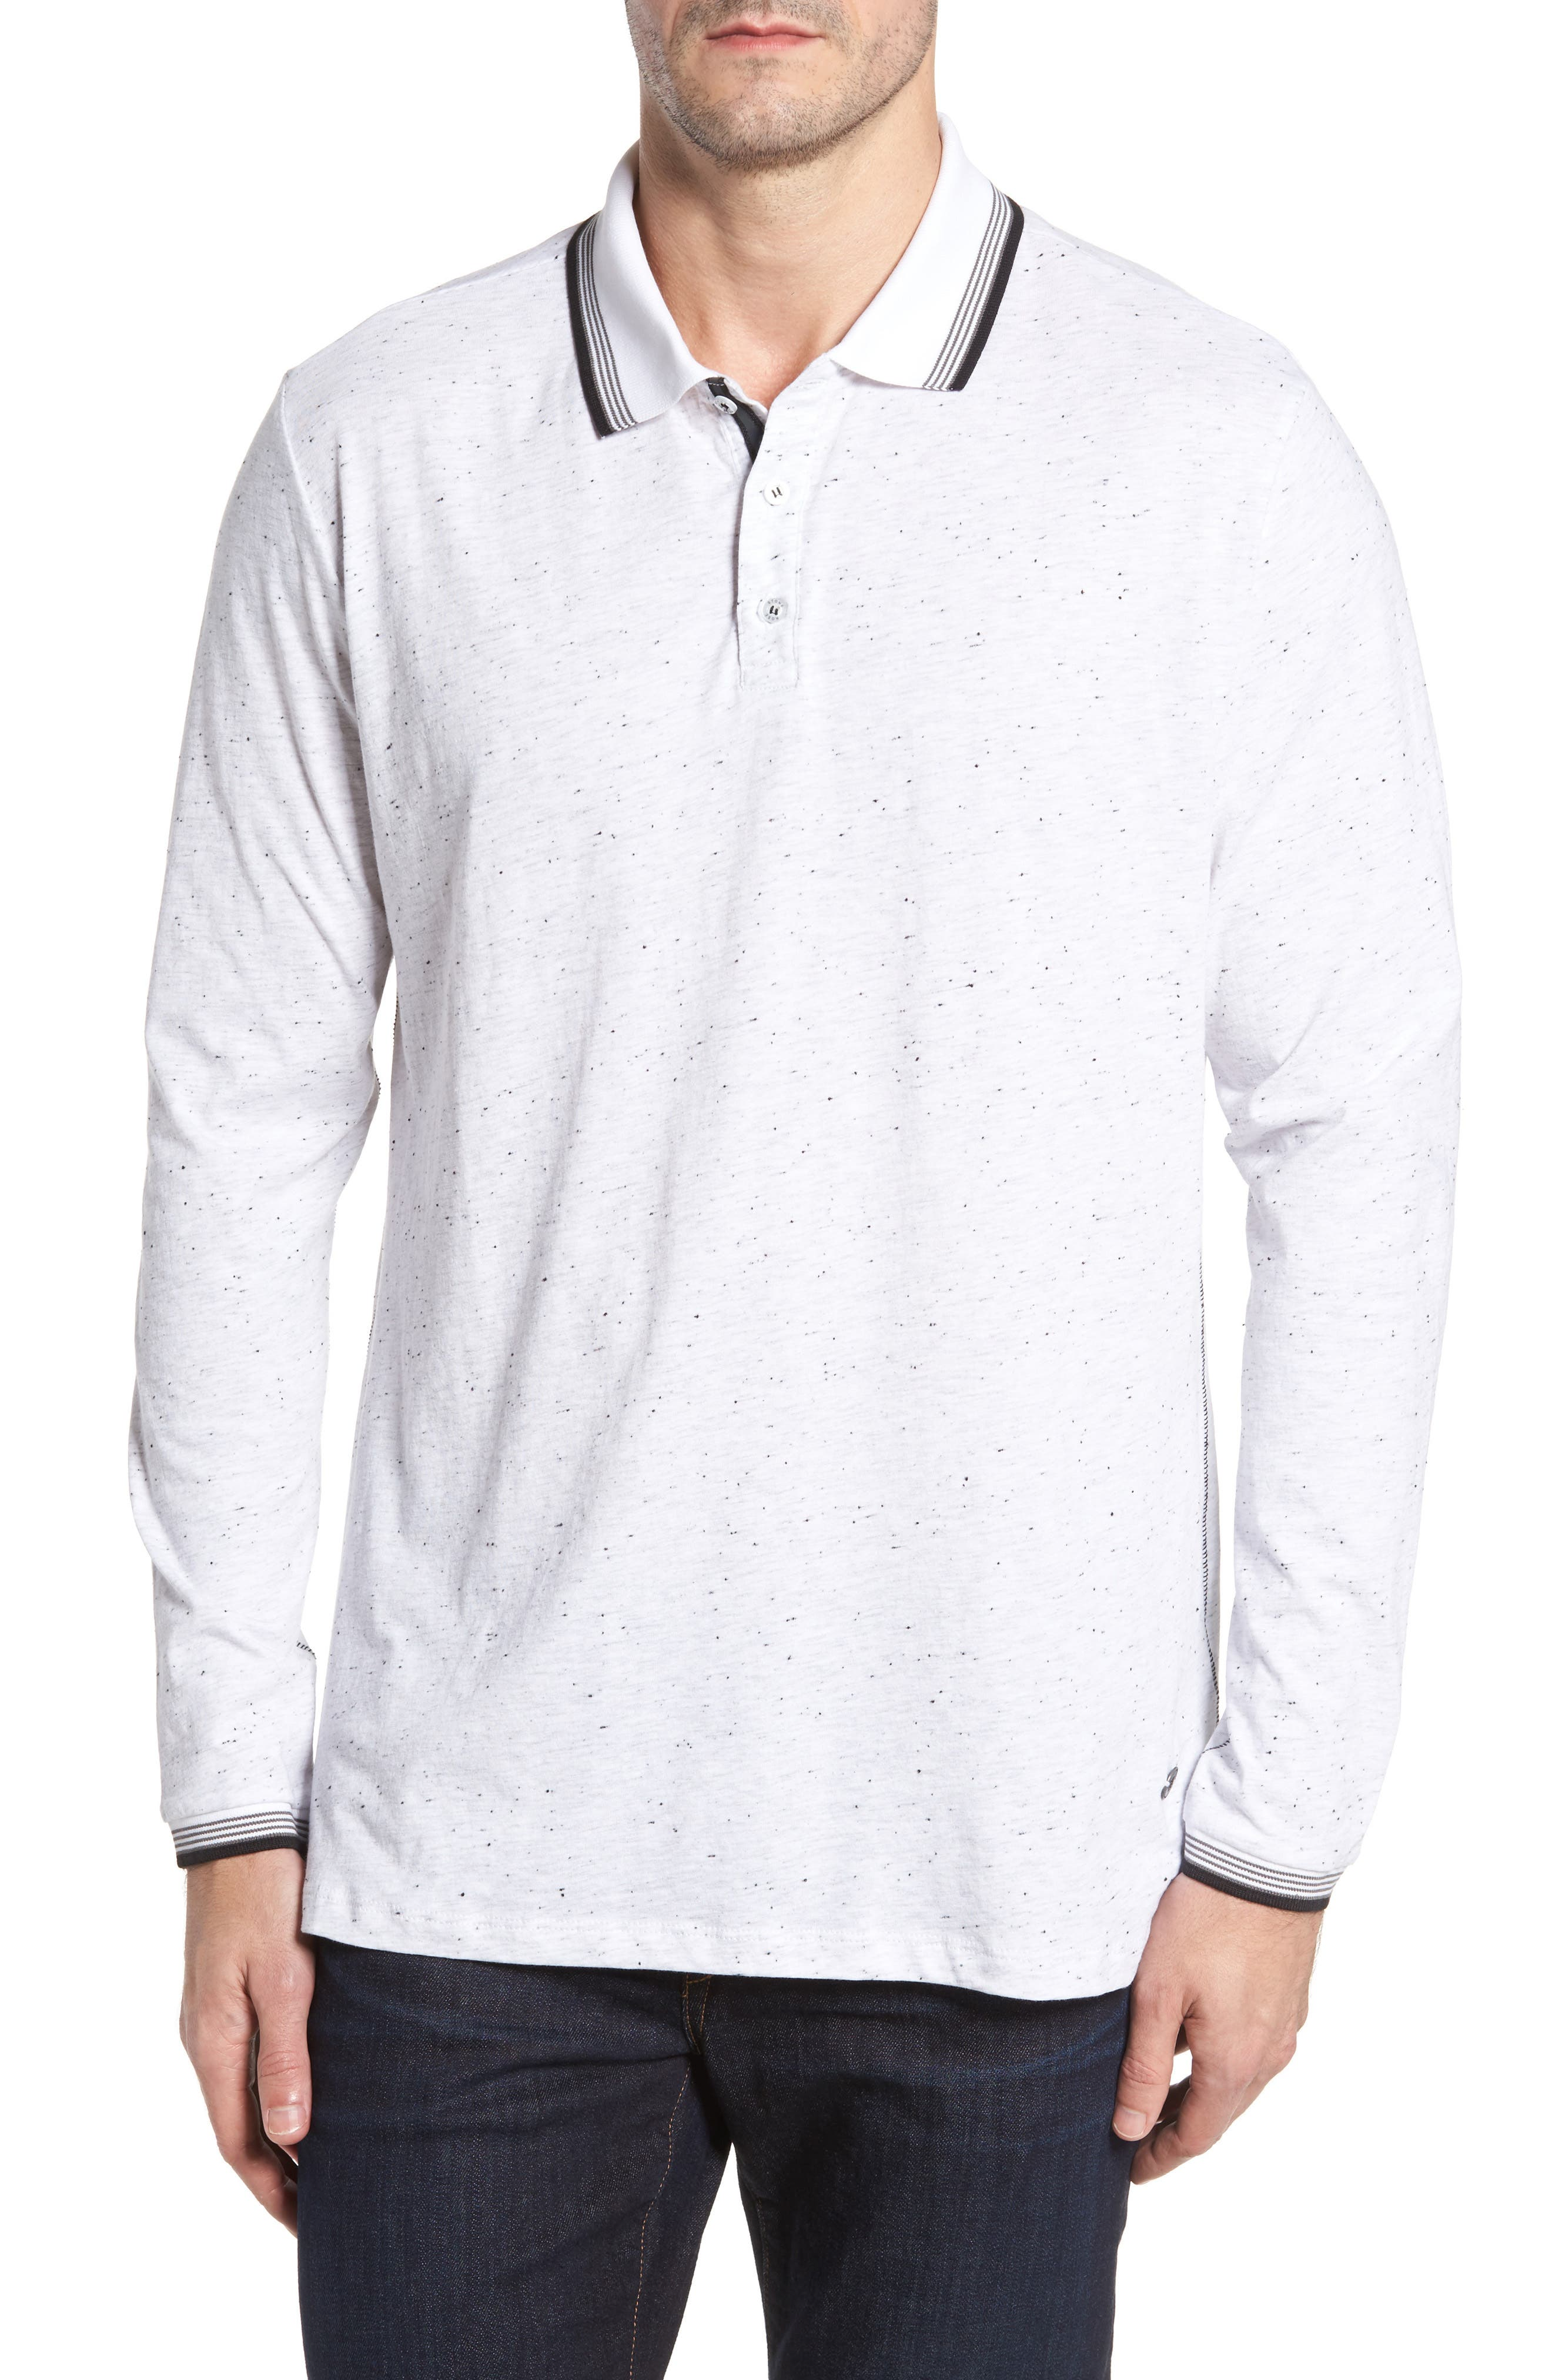 Speckle Knit Long Sleeve Polo,                         Main,                         color, White